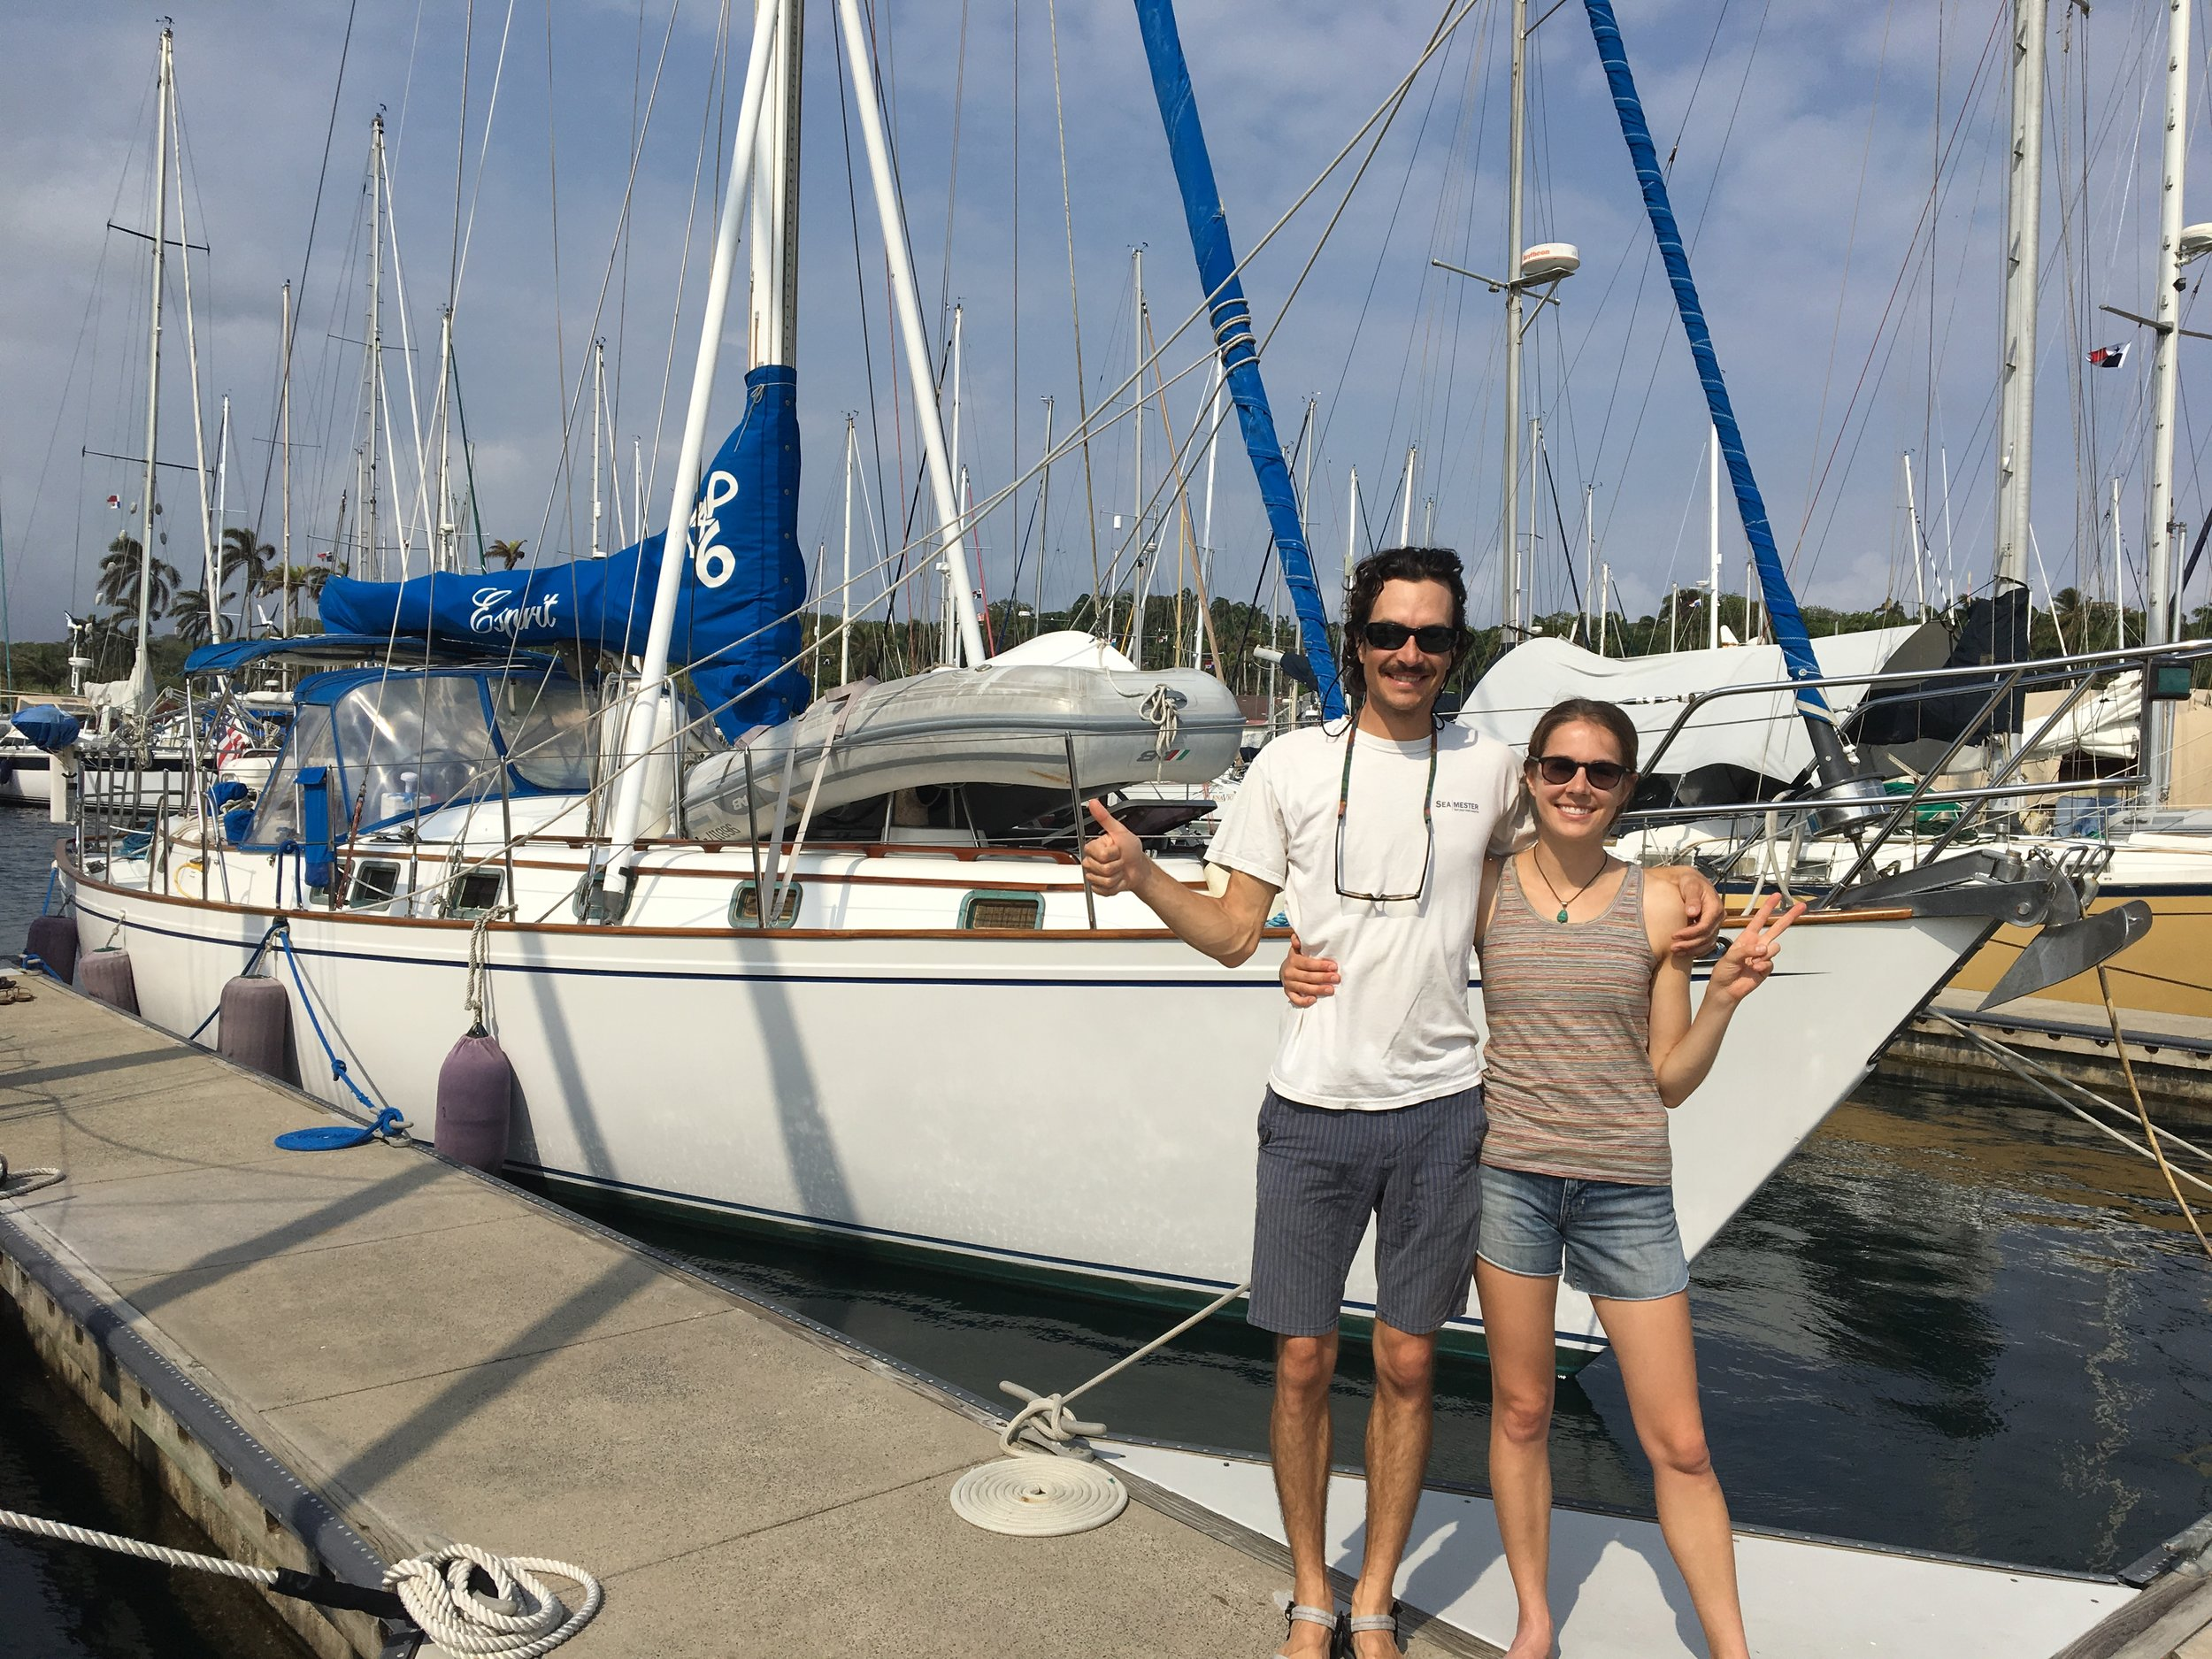 Two ecstatic young sailors getting ready for a Panama Canal transit the same afternoon!